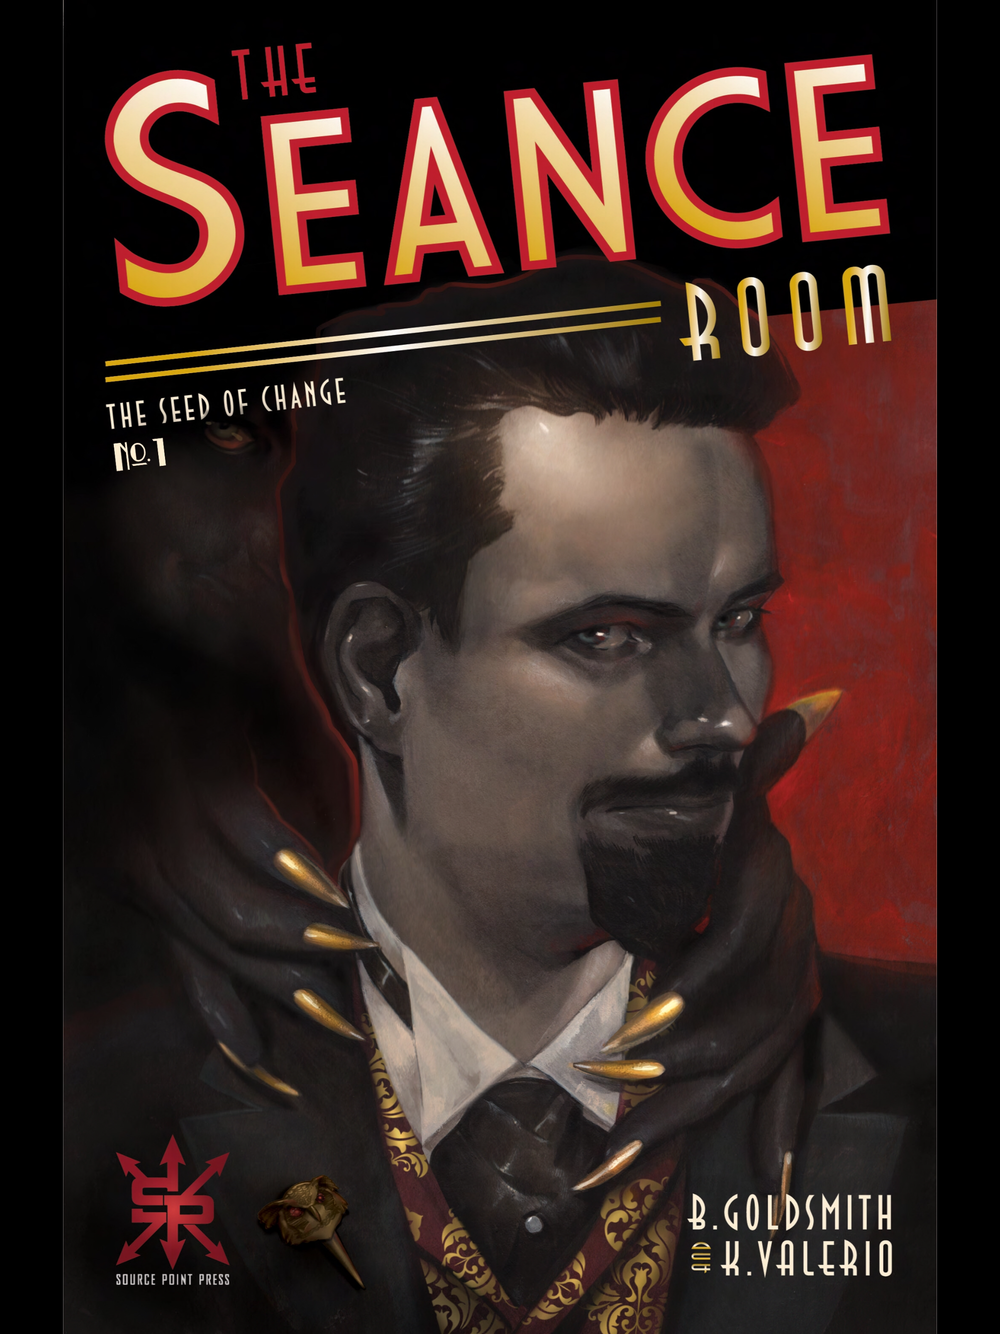 Above: Cover of Seance Room available for purchase here... www.comixology.com